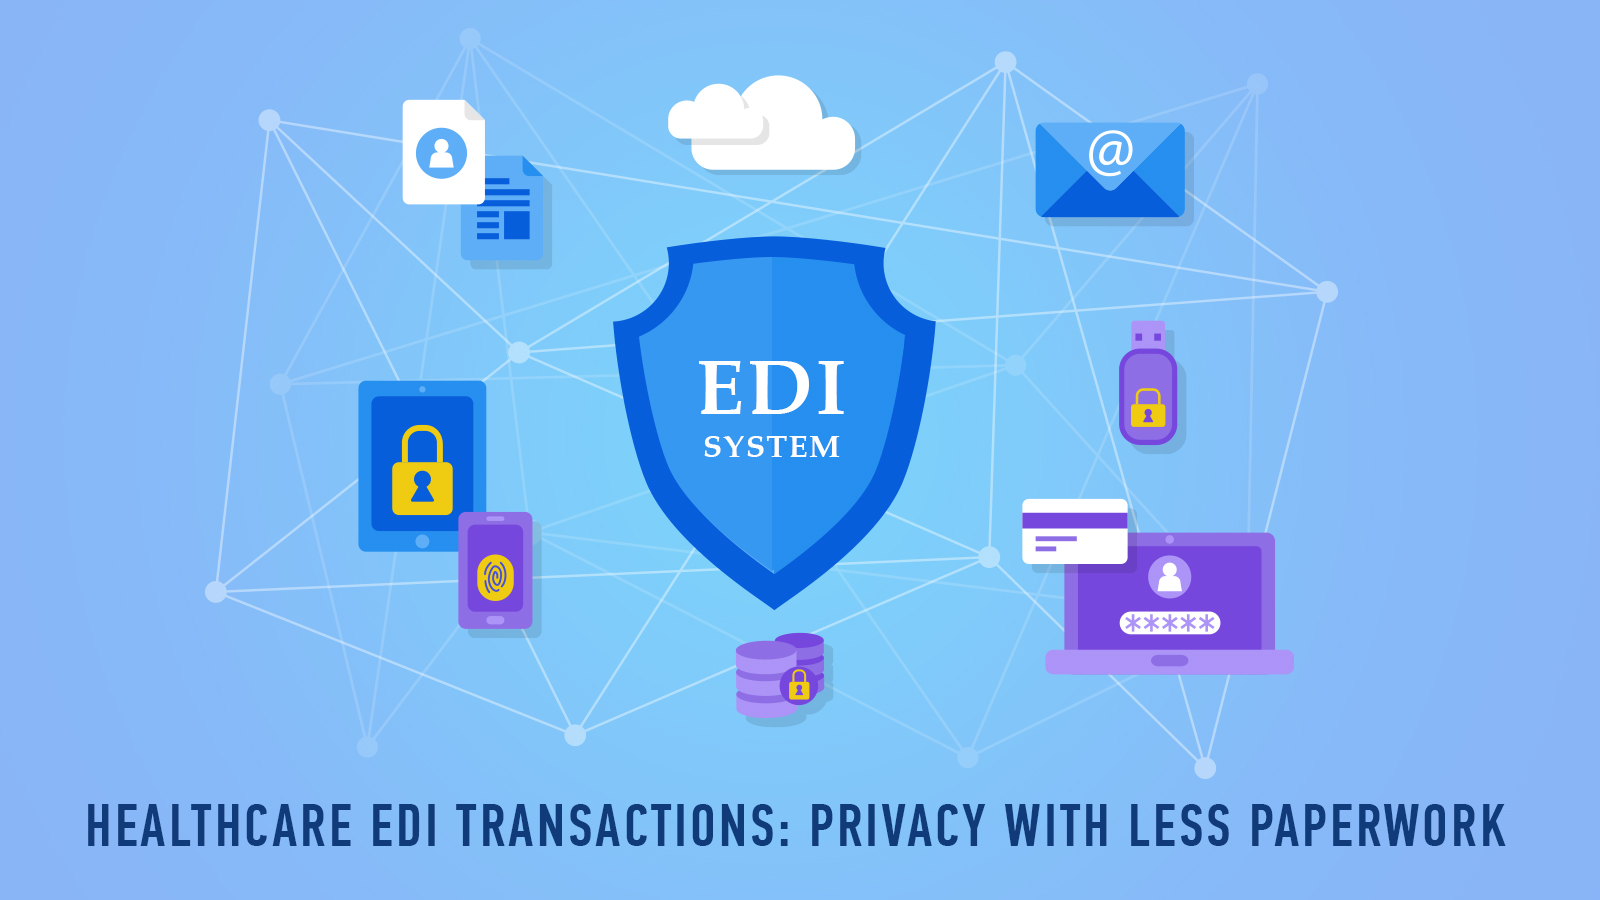 Healthcare EDI Transactions: Privacy with Less Paperwork